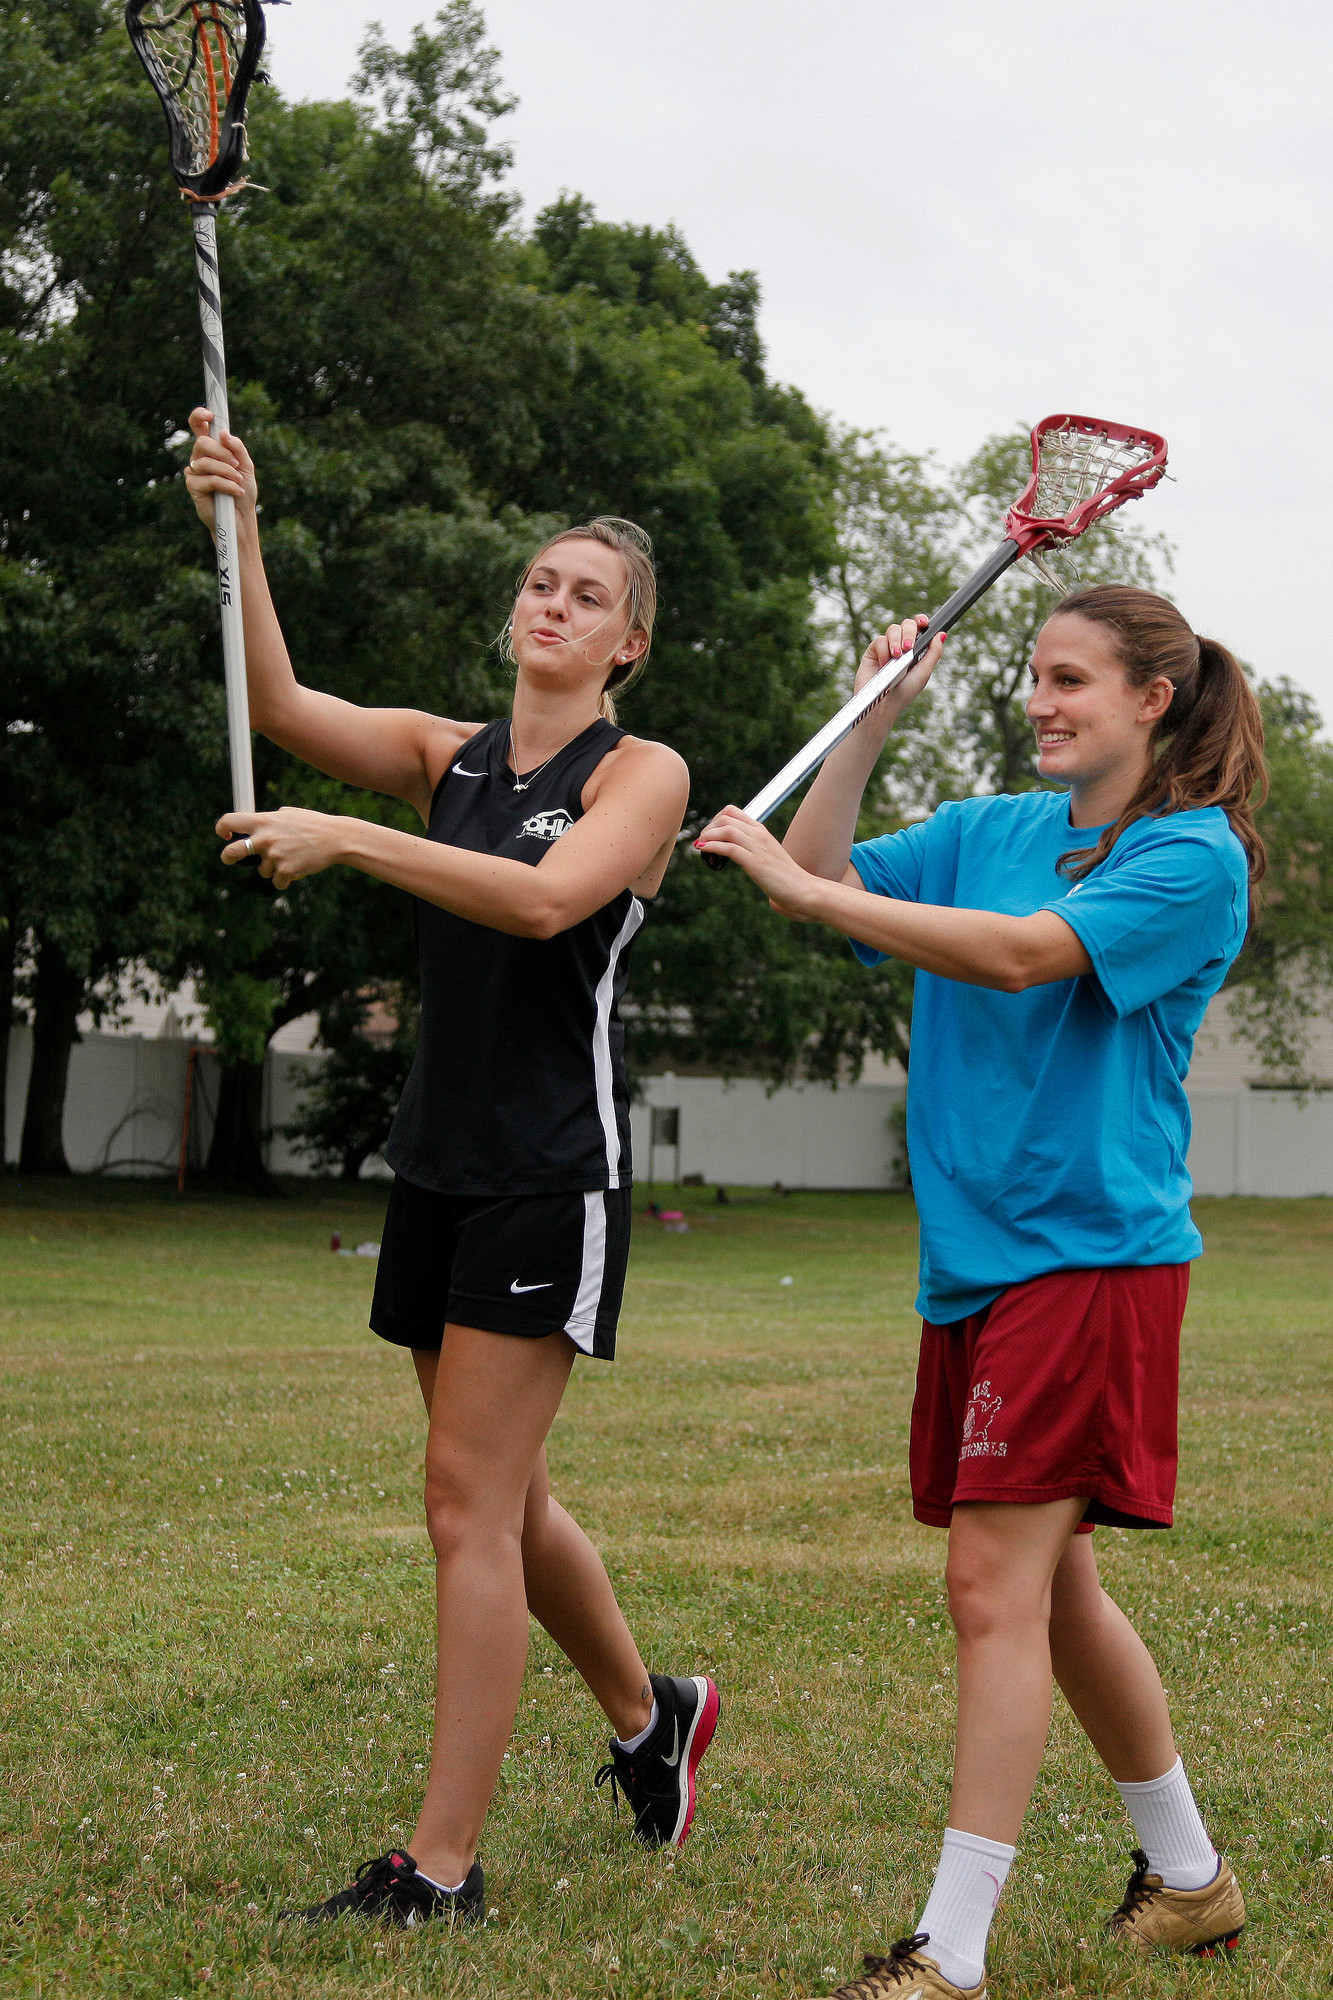 Jaclyn Quinn, left, a Quinnipiac student who played lacrosse at Wantagh High School, taught Herald intern Jess Rosen proper stick handling.